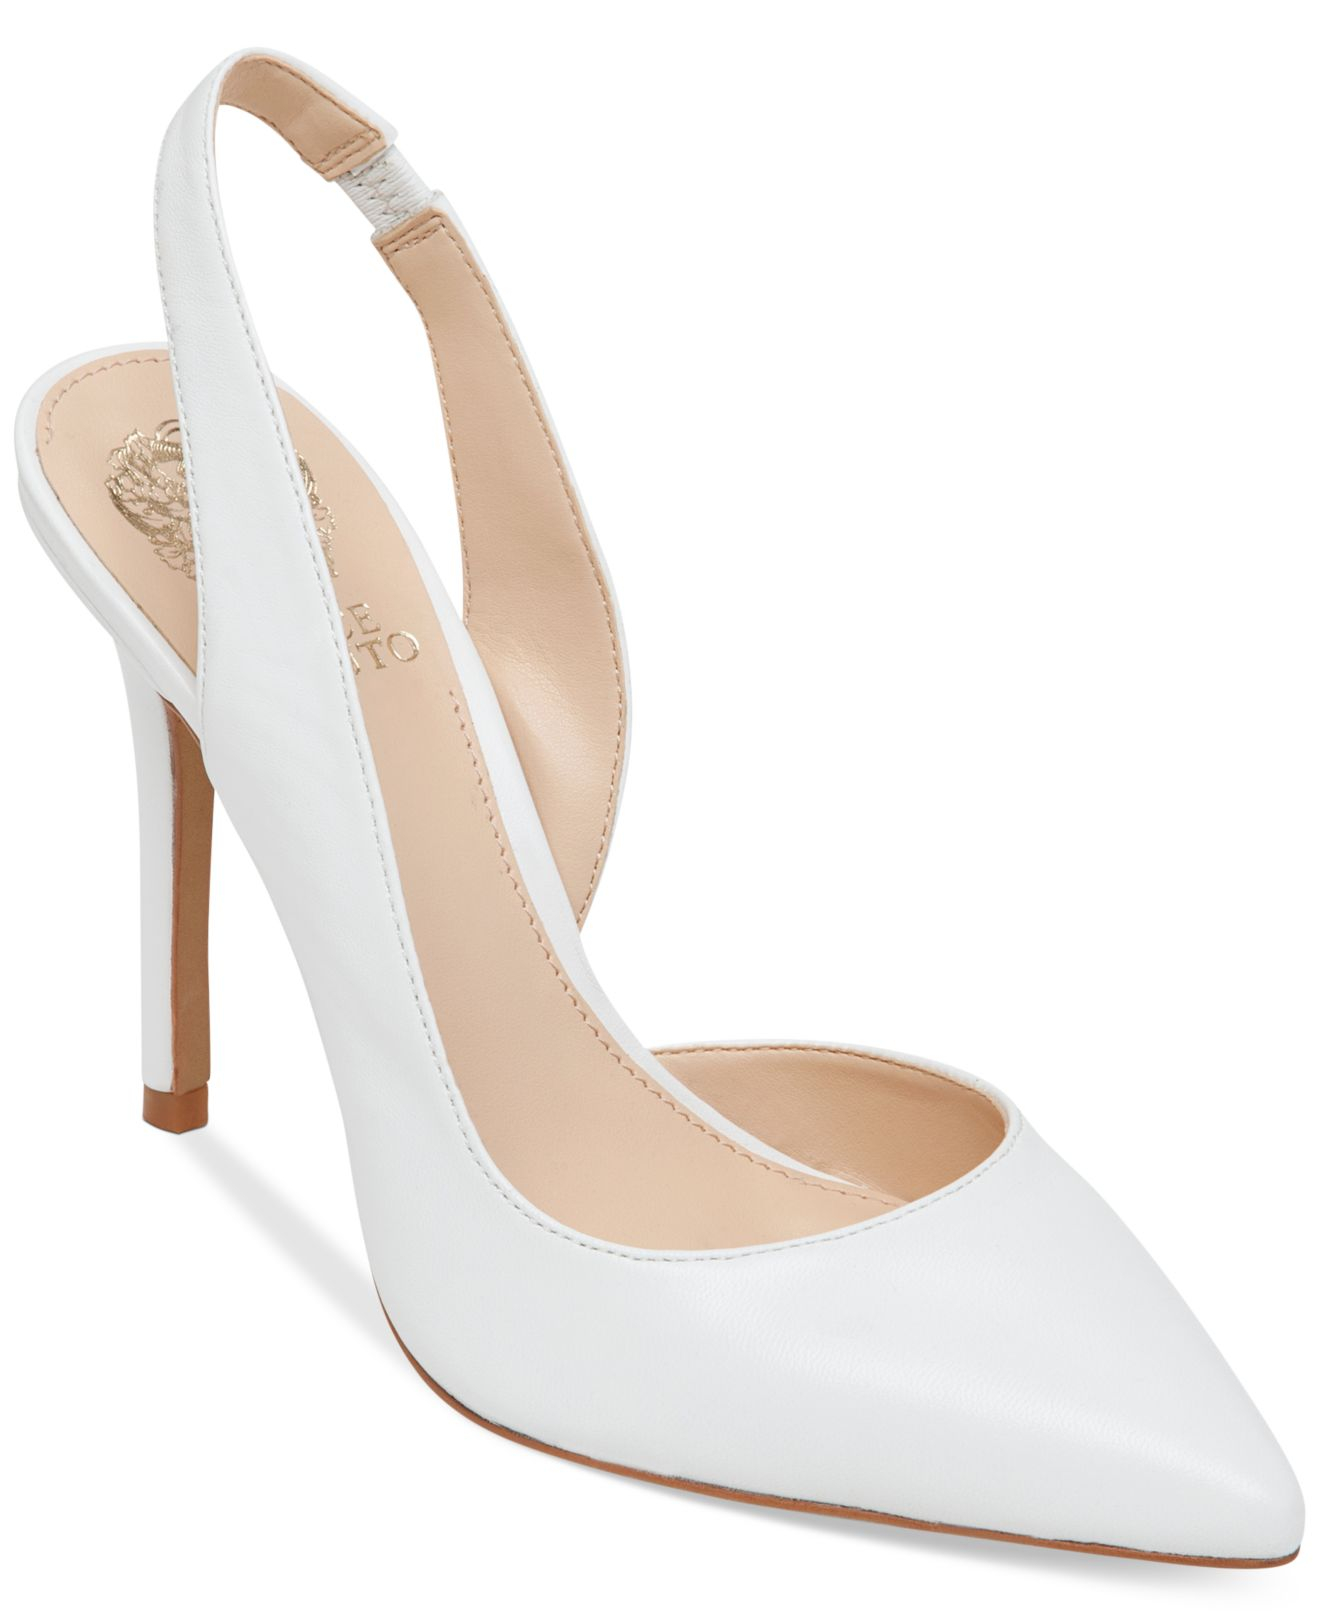 Vince camuto Sassa Slingback Pumps in White | Lyst